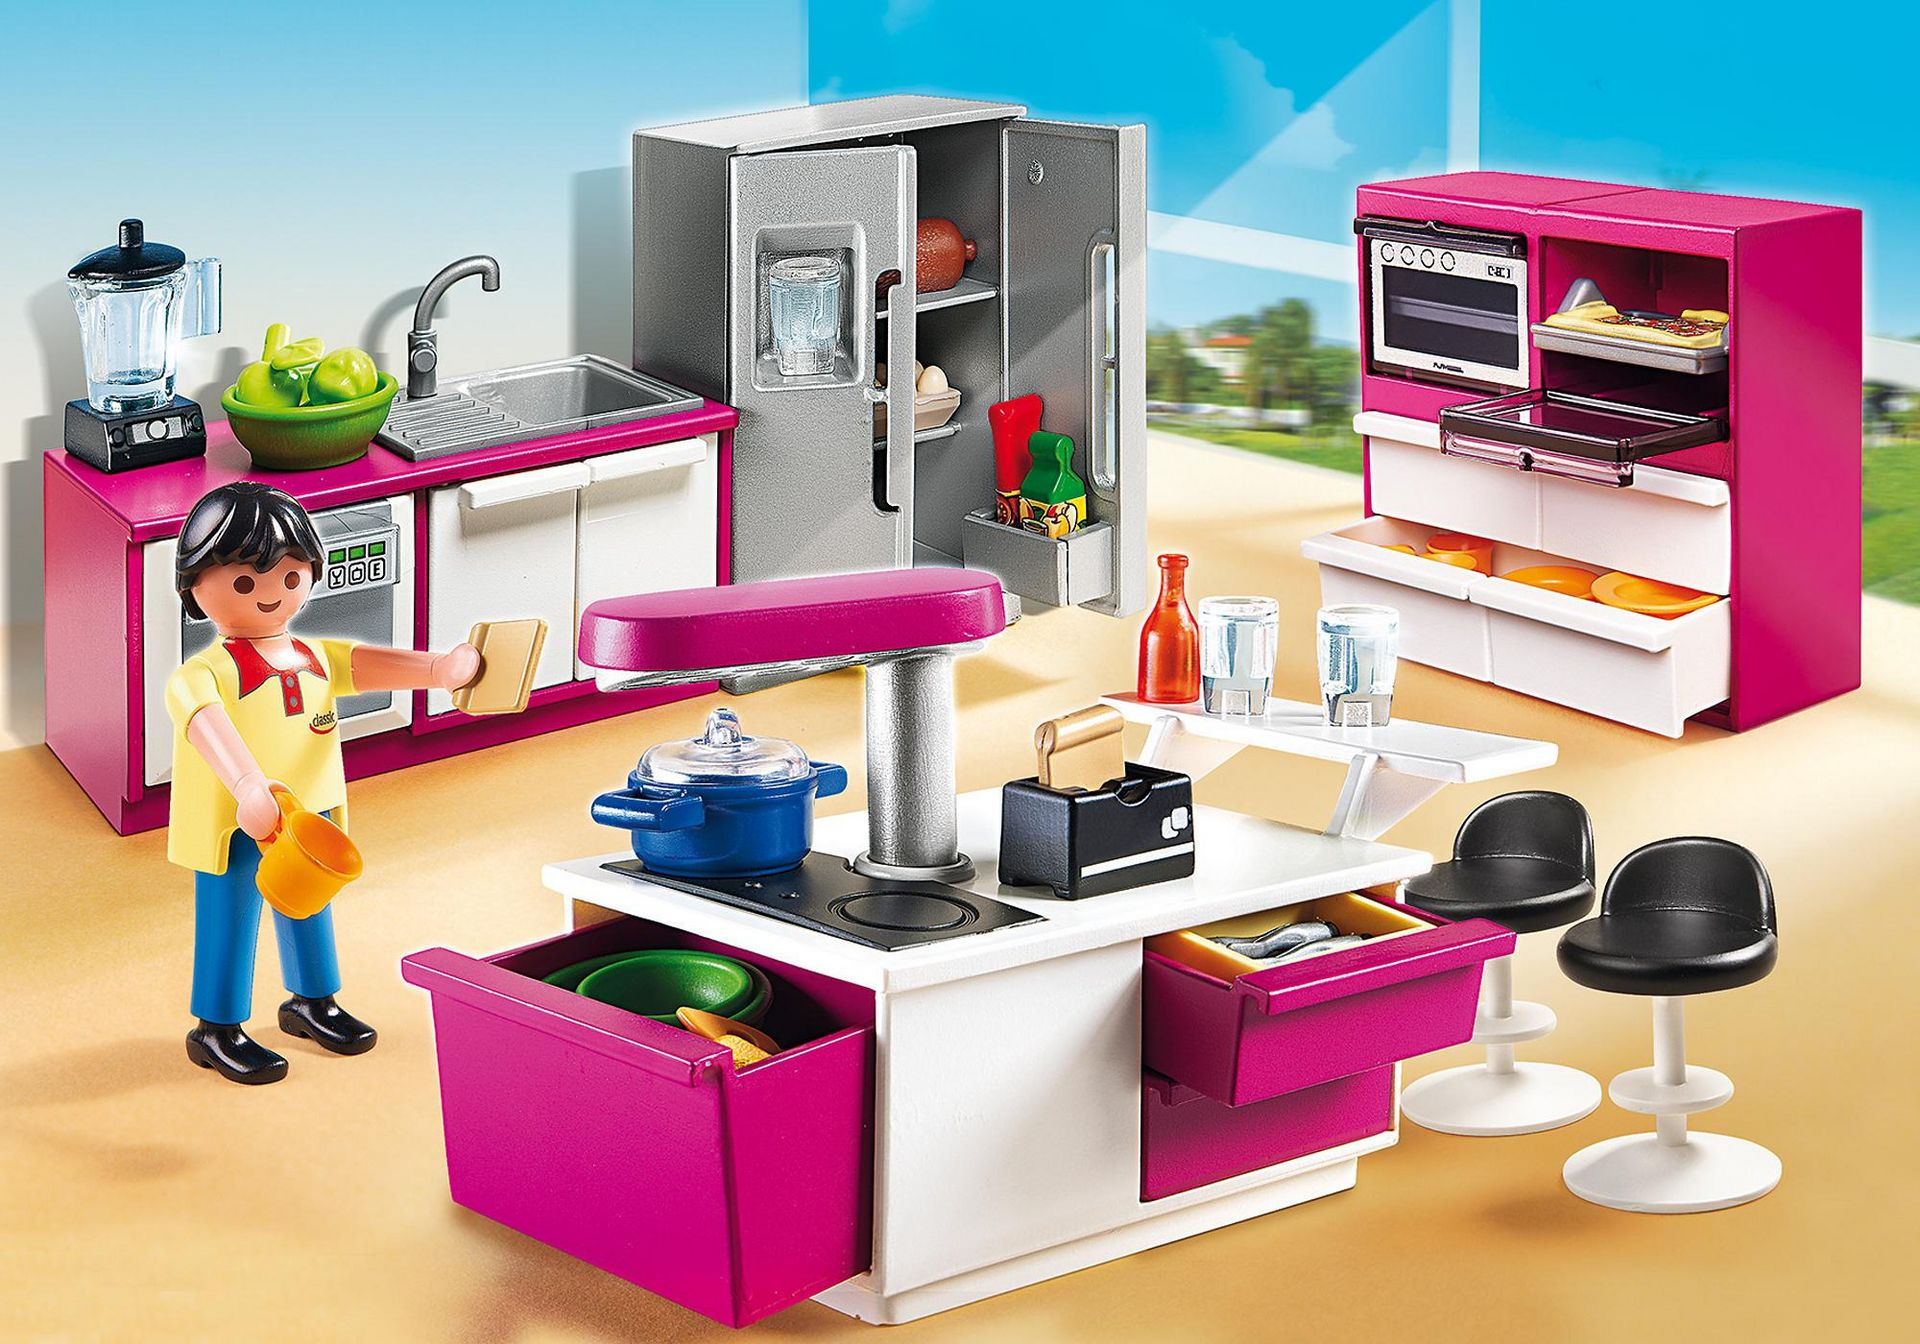 Sink Dishwasher Cooker Cupboards /& more Modern House Playmobil Kitchen Units